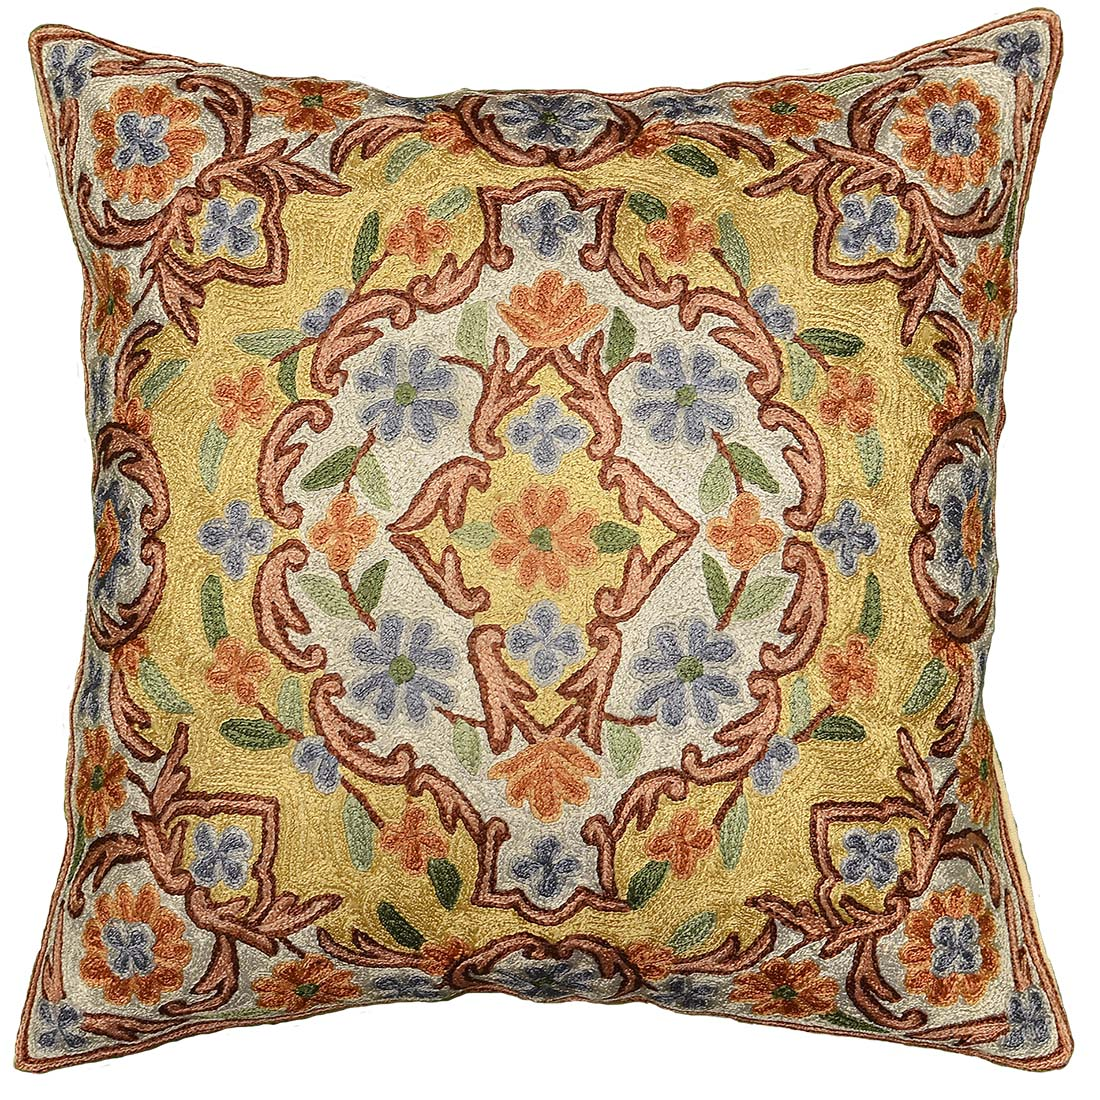 Floral Verbascum Hand Embroidered Pillow Cover 16 x 16